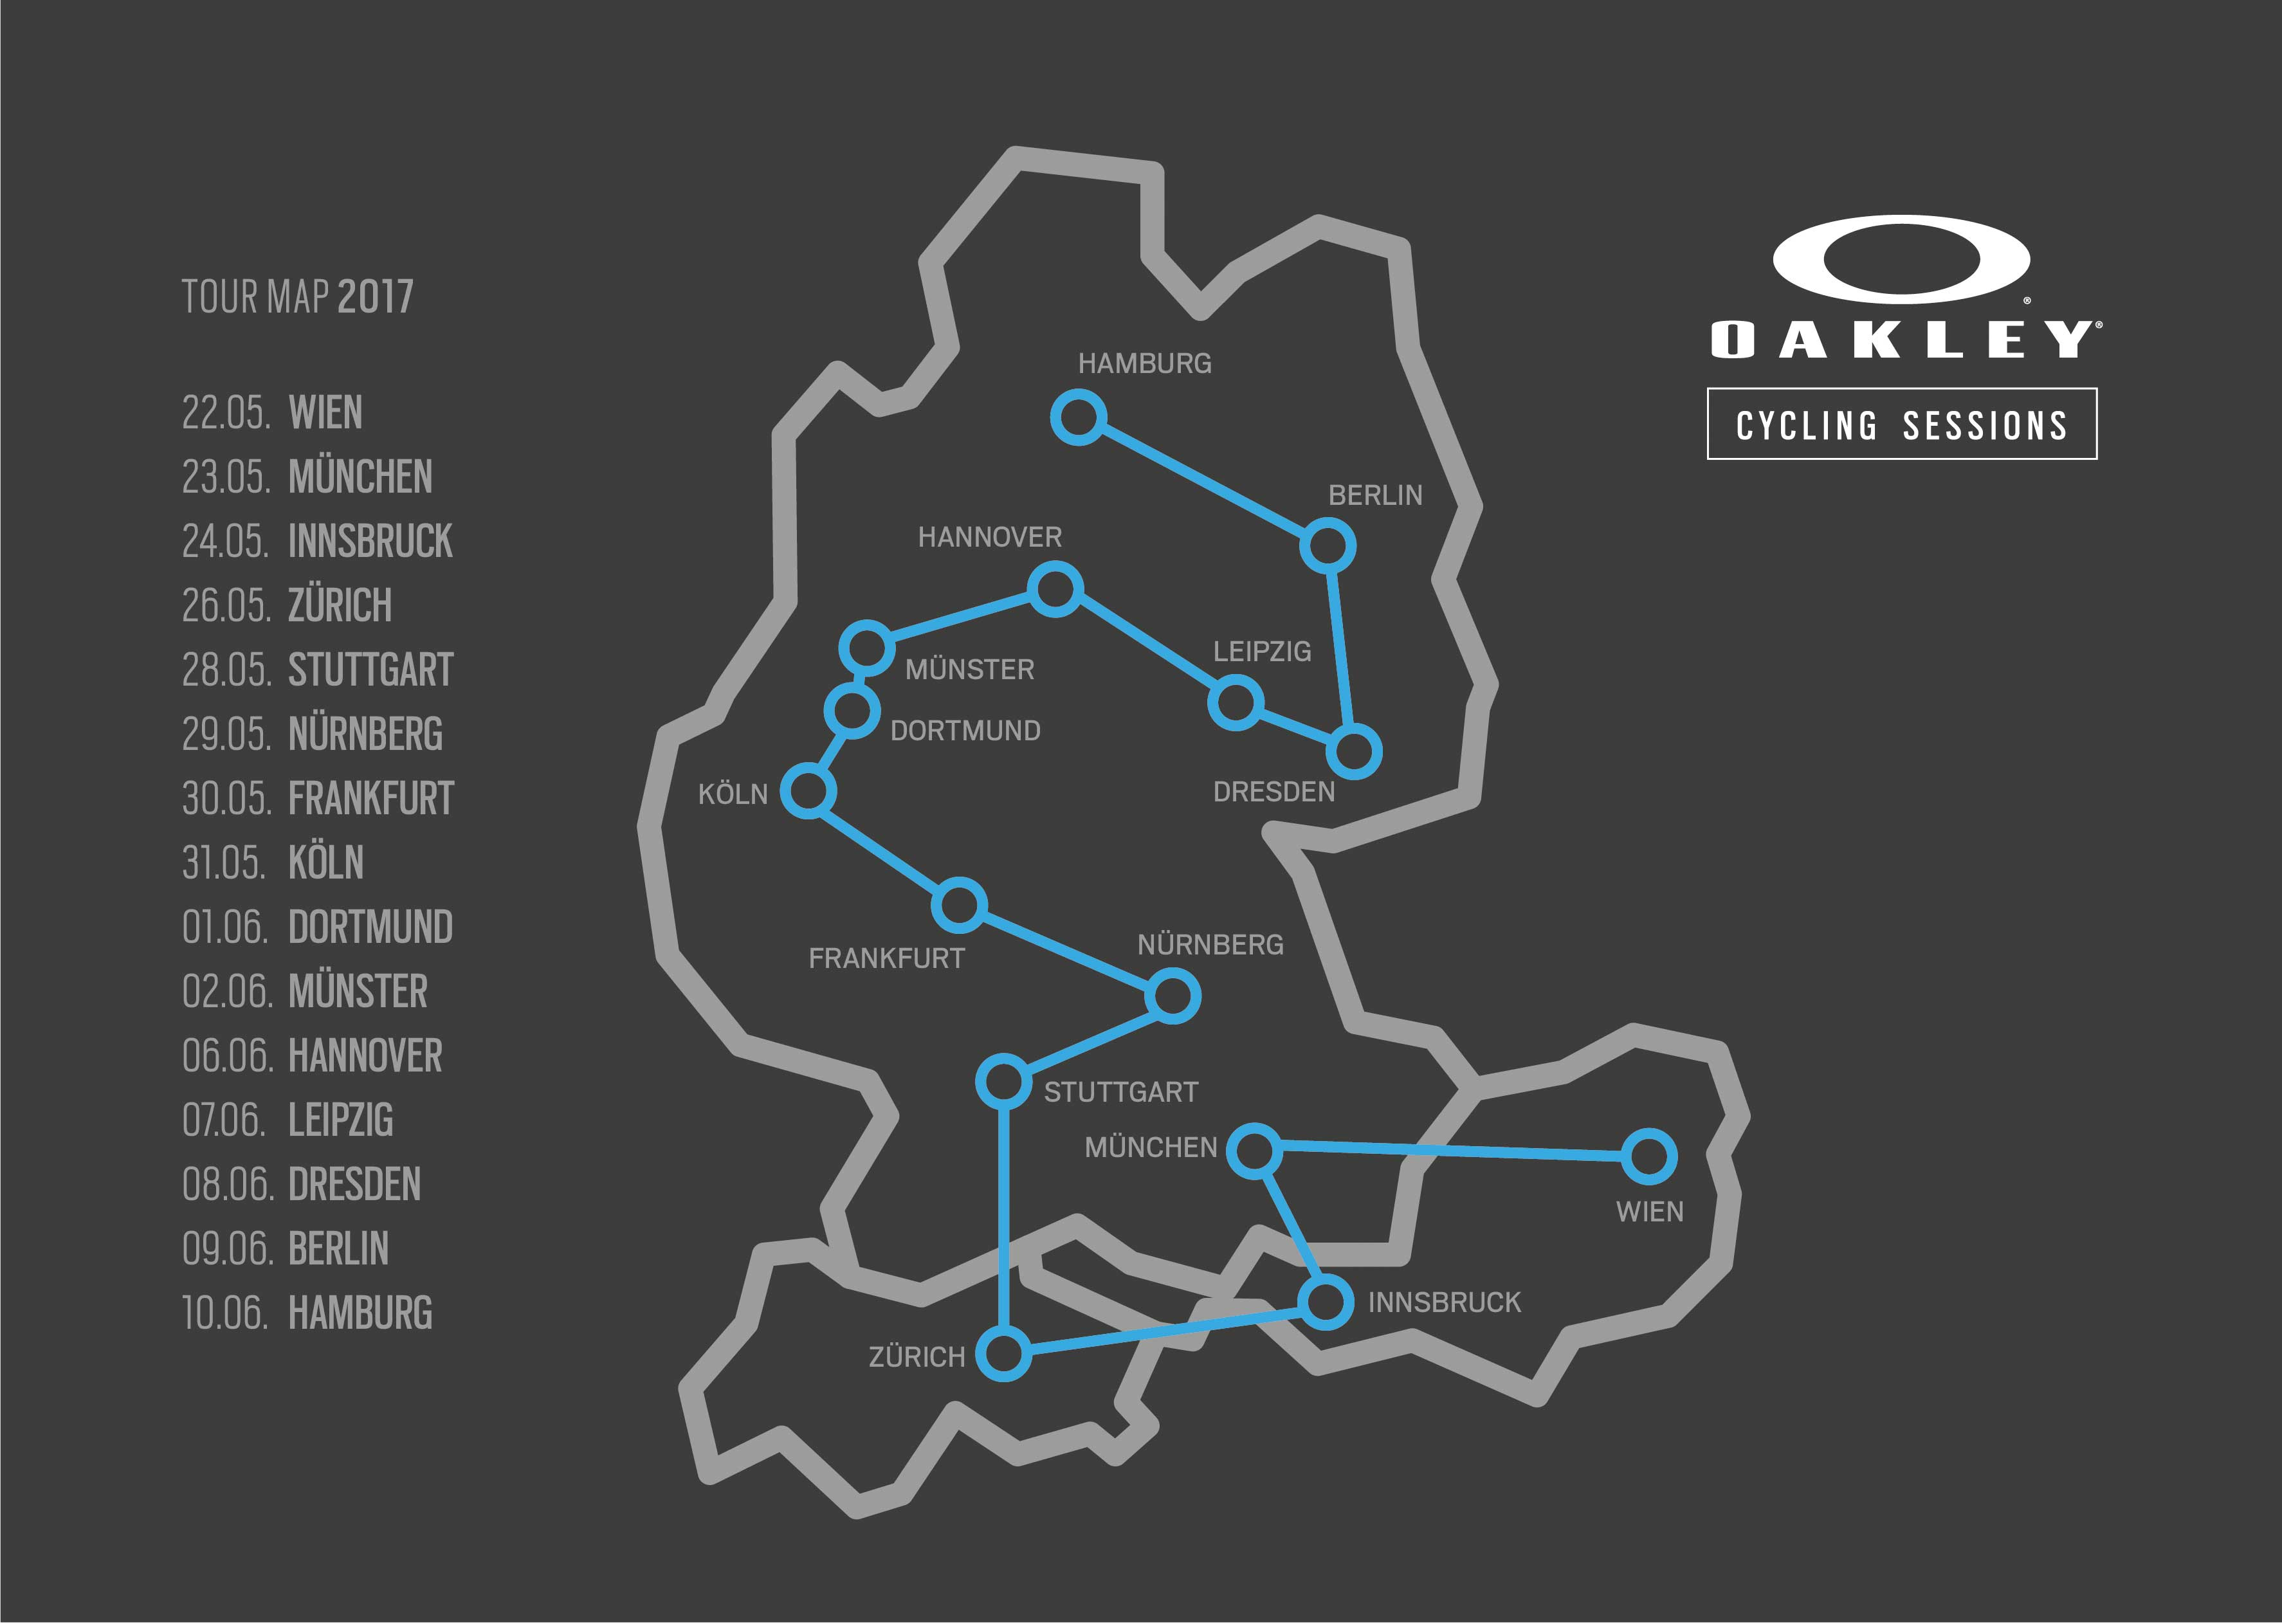 Oakley Cycling Sessions Tour 2017